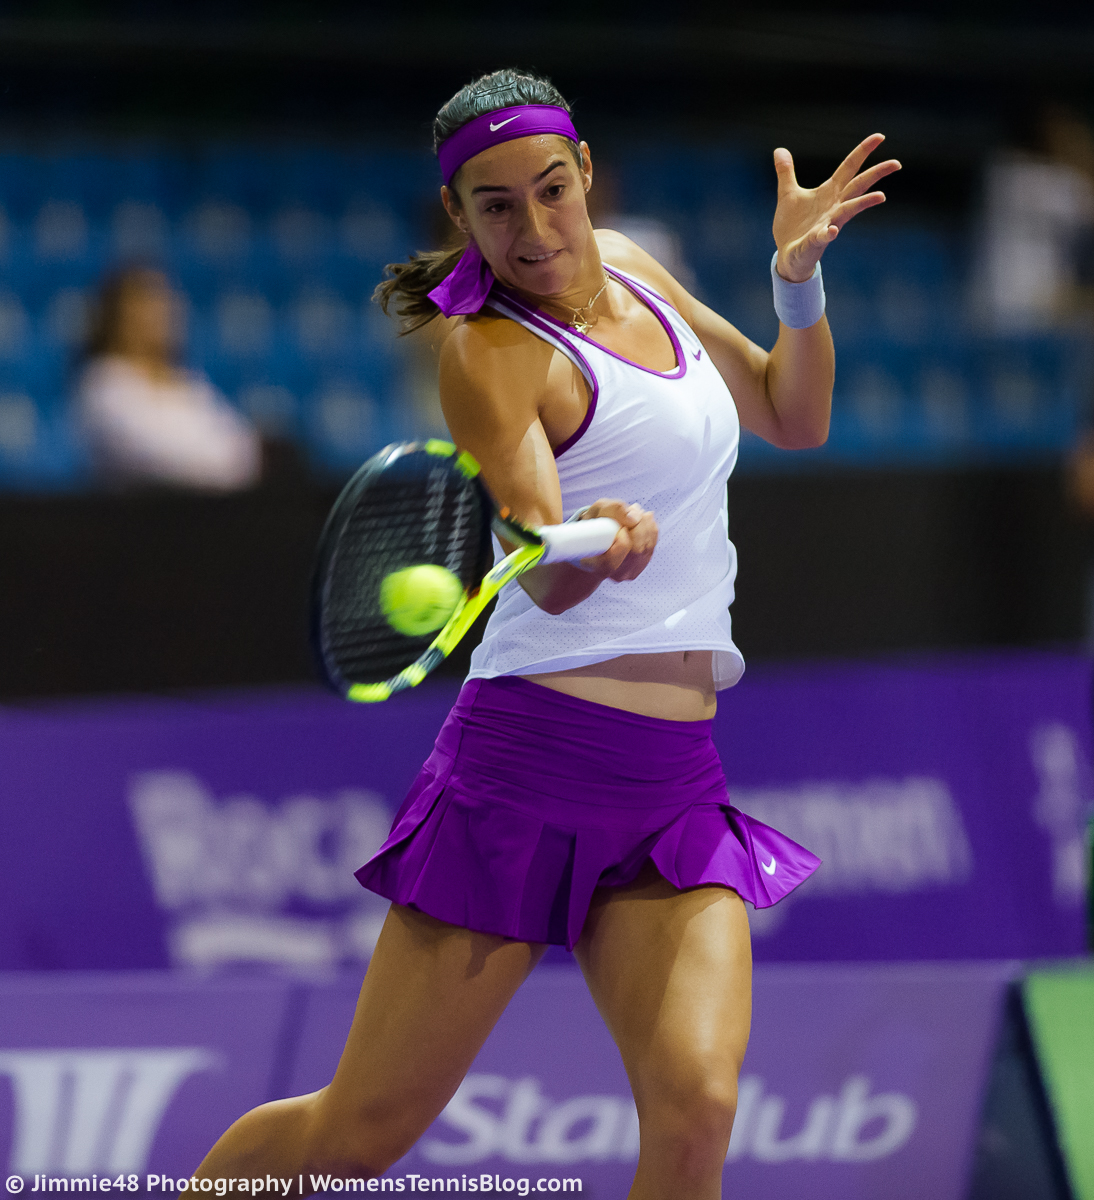 Wta: Singapore Warms Up For WTA Finals